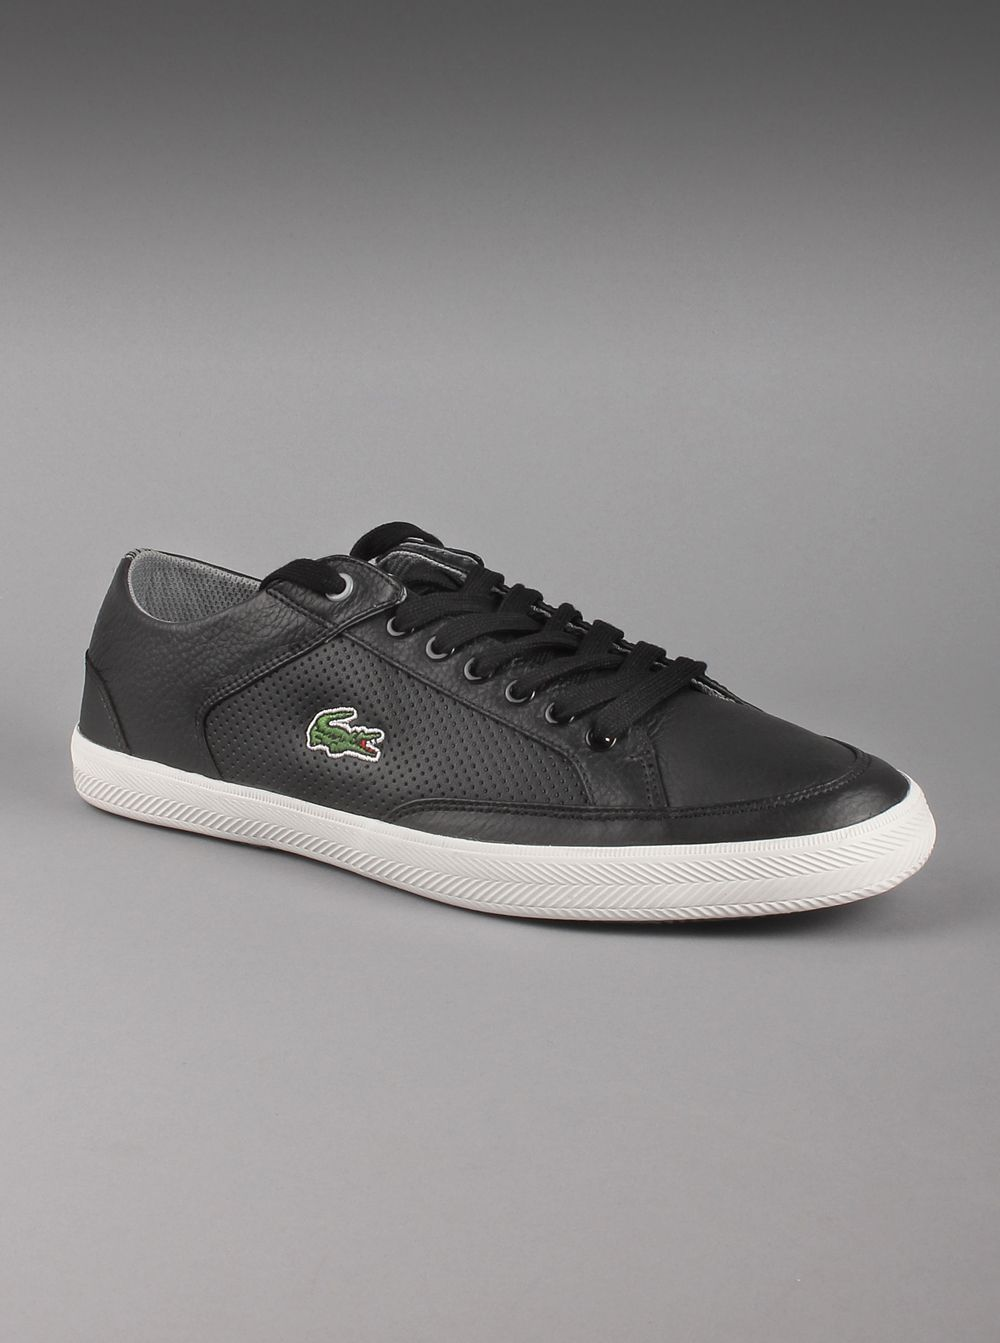 Casual Lacoste® Men's Leather In Haneda Black BlackThis Shoes Cre Y7gbvIy6f